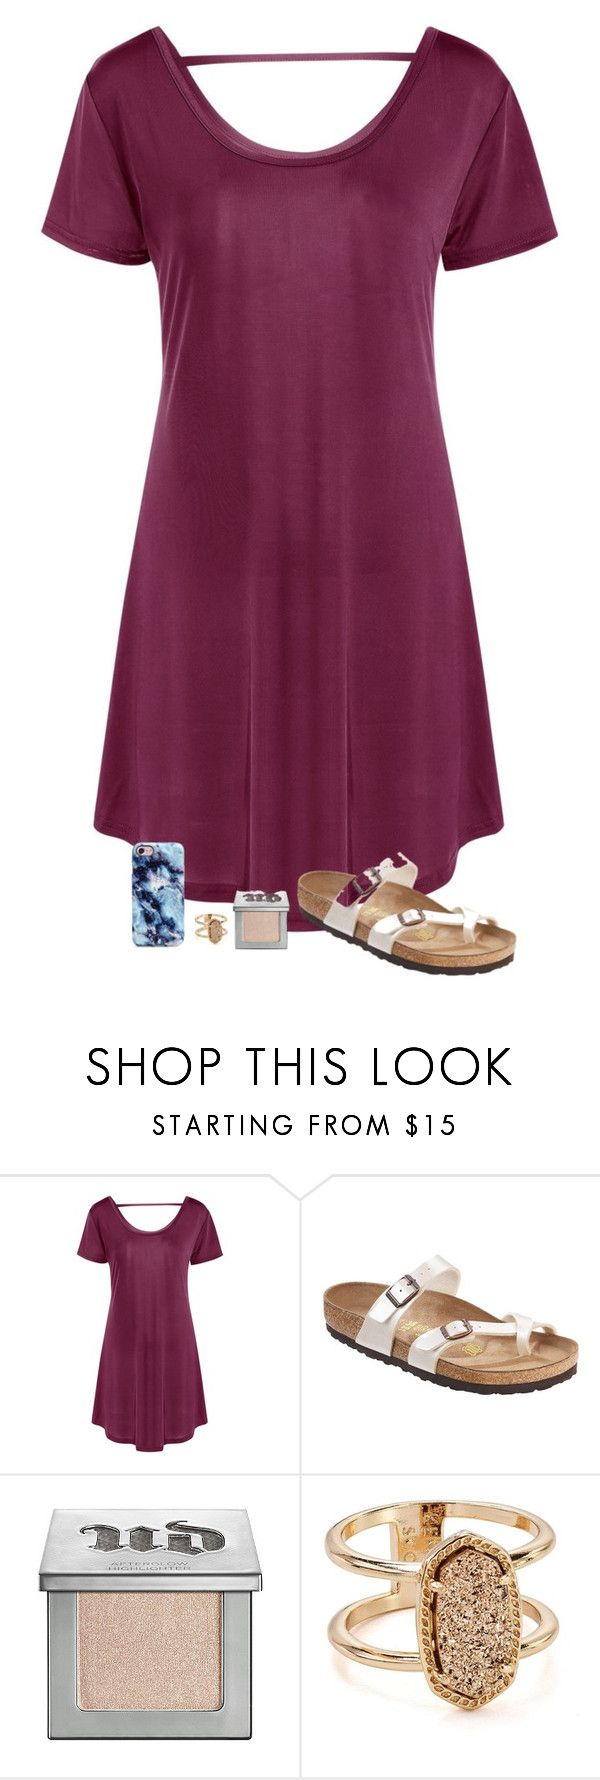 """""""What I have done so far this week"""" by sweet-n-southern ❤ liked on Polyvore featuring Birkenstock, Urban Decay and Kendra Scott"""